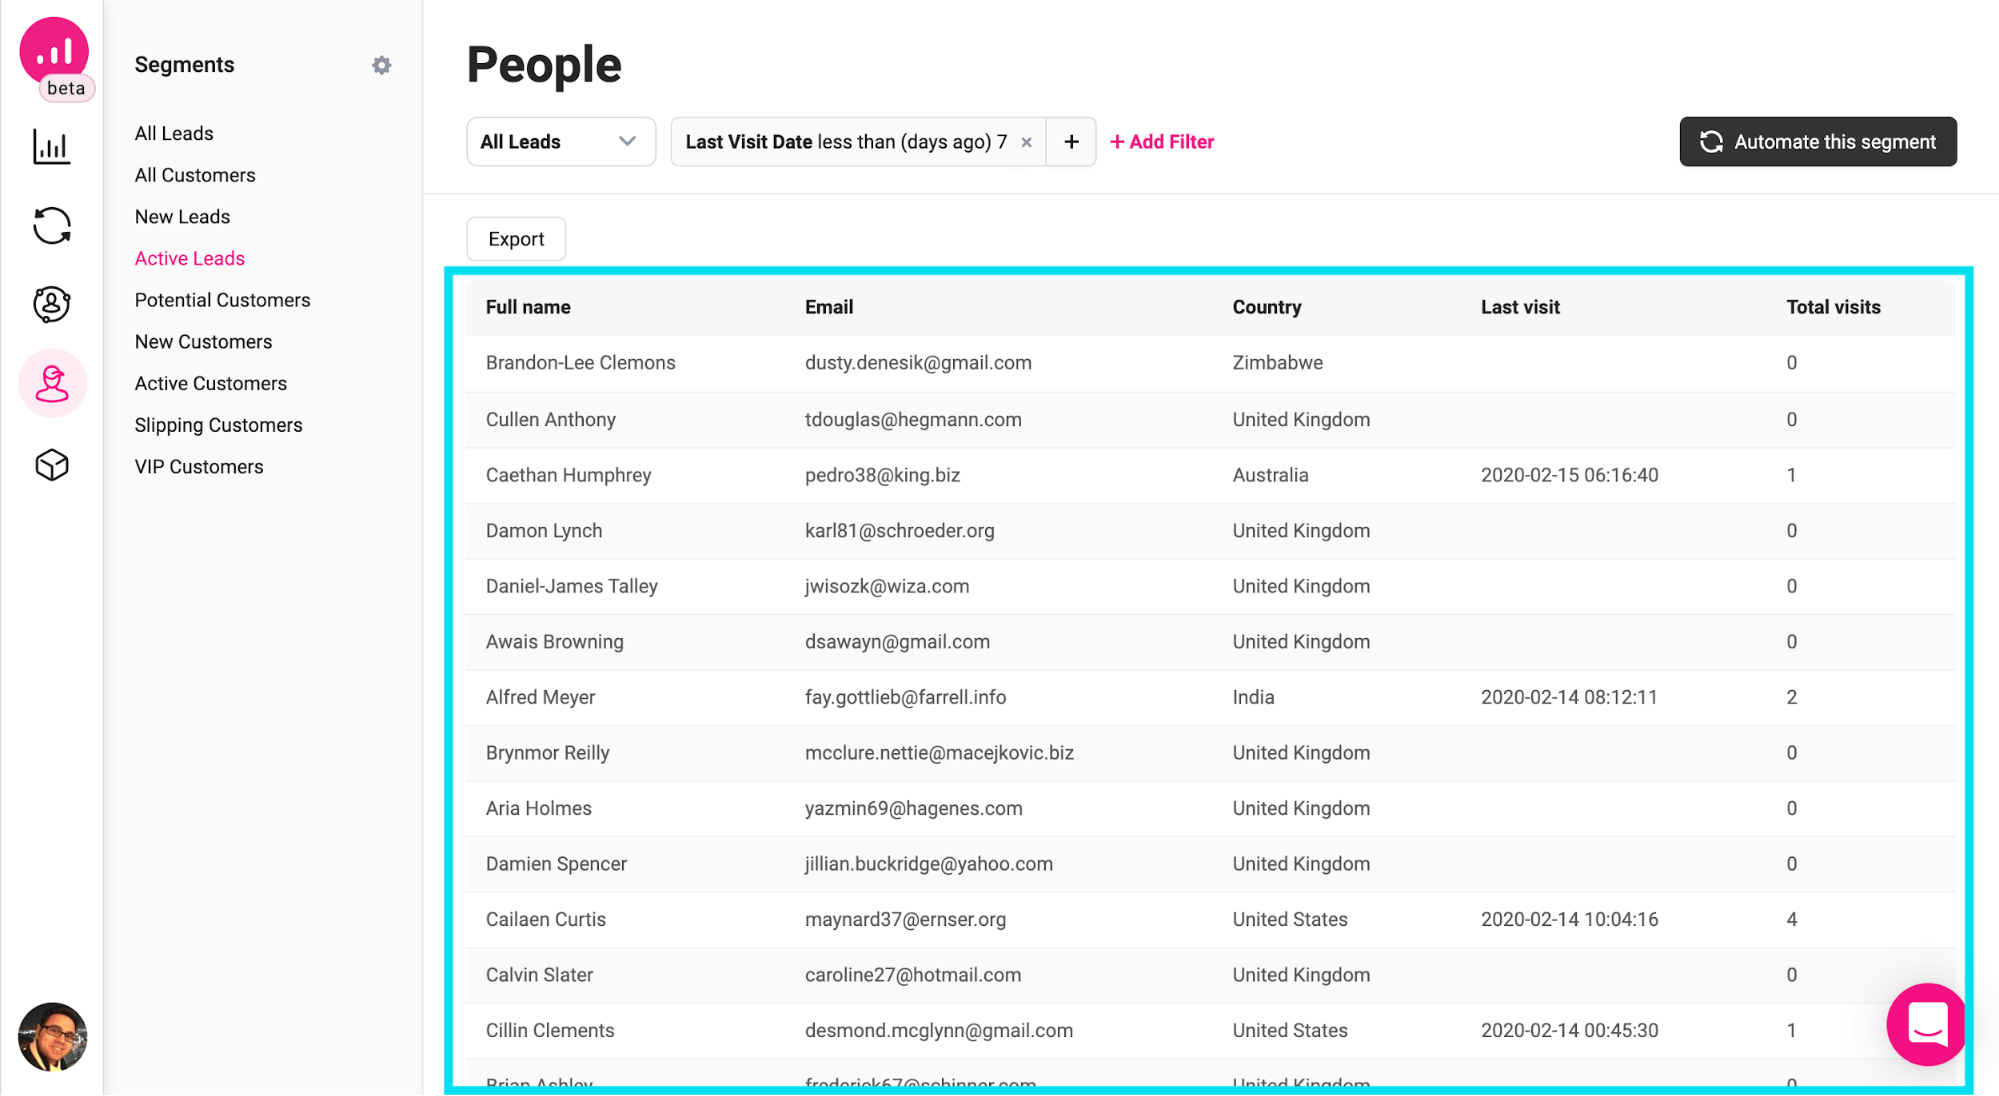 people - result based on the selected filters